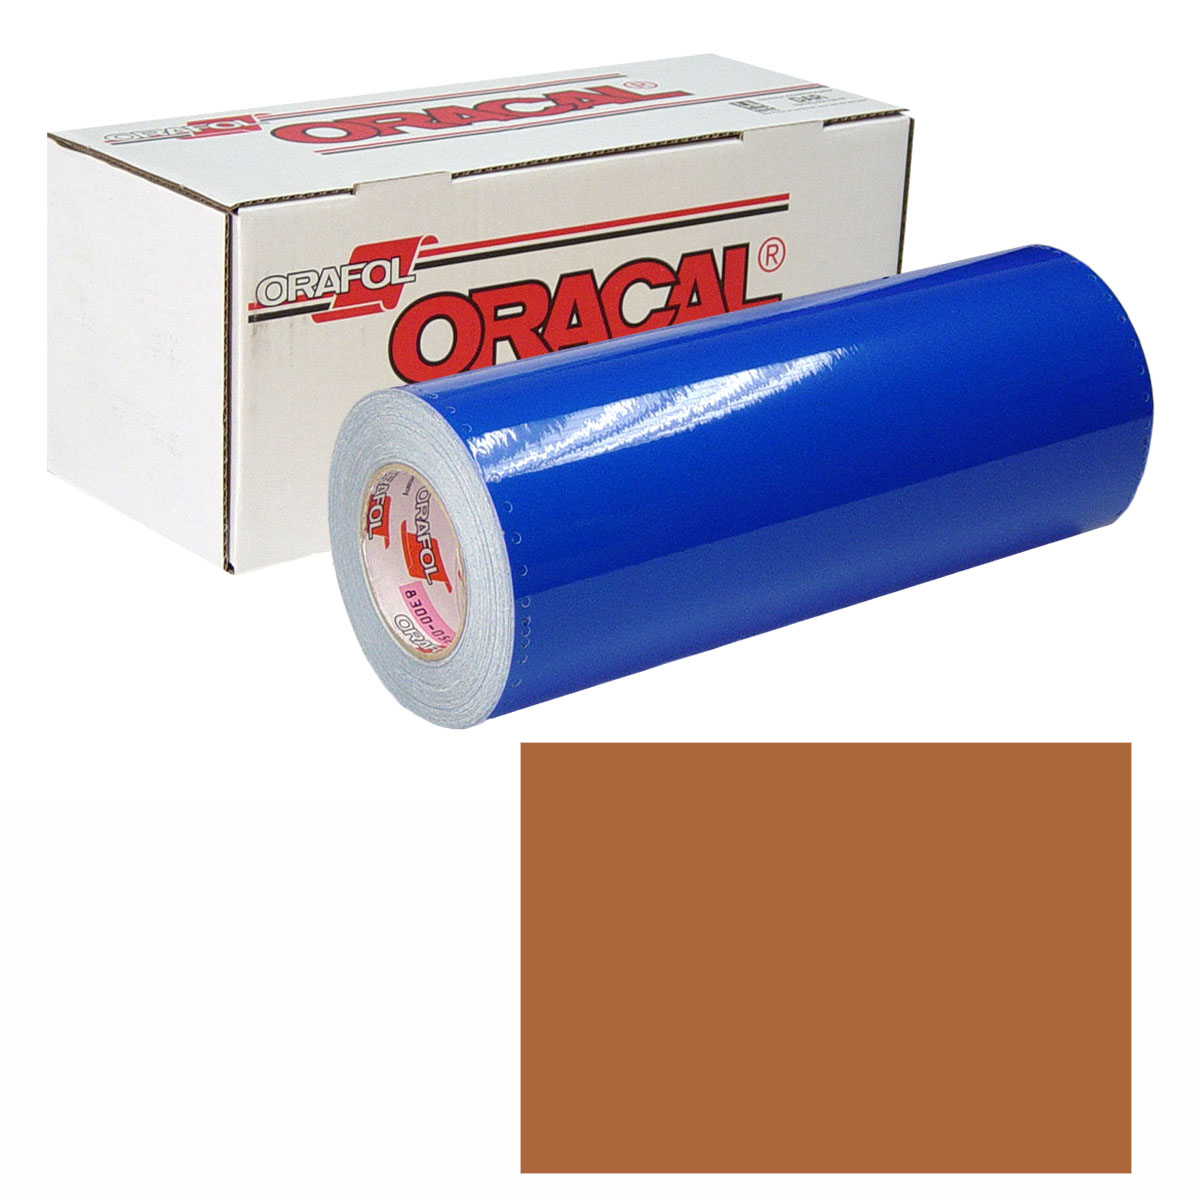 ORACAL 631 15in X 10yd 092 Copper Met